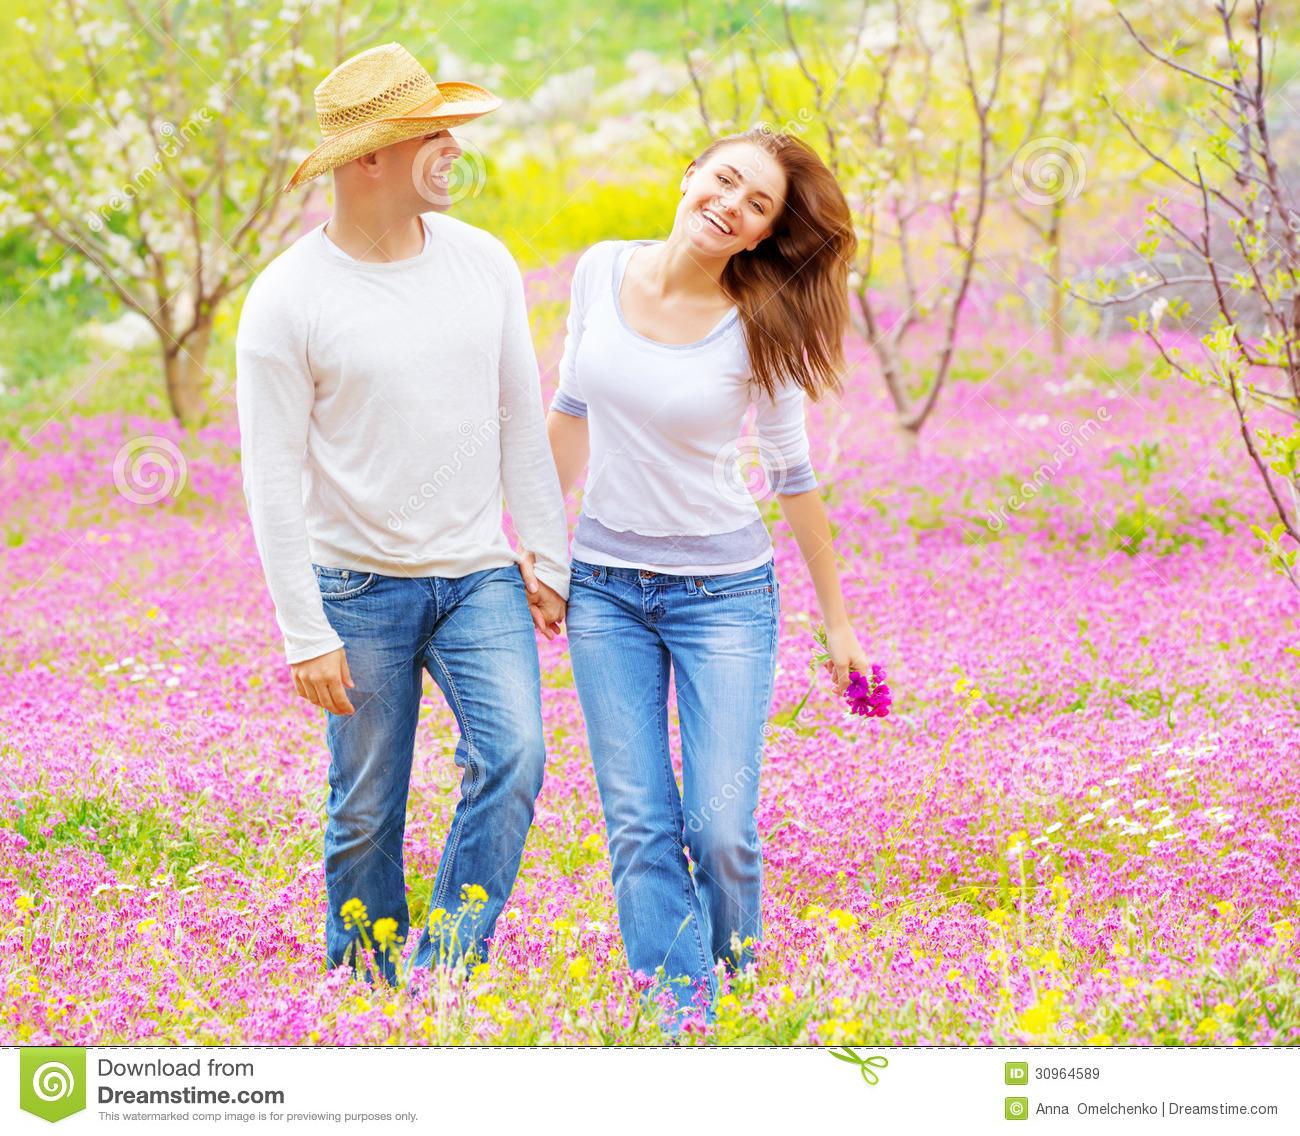 glade spring muslim personals Our network of milfs women in glade spring is the perfect place to make friends or find a milf girlfriend in glade spring  glade spring muslim singles.